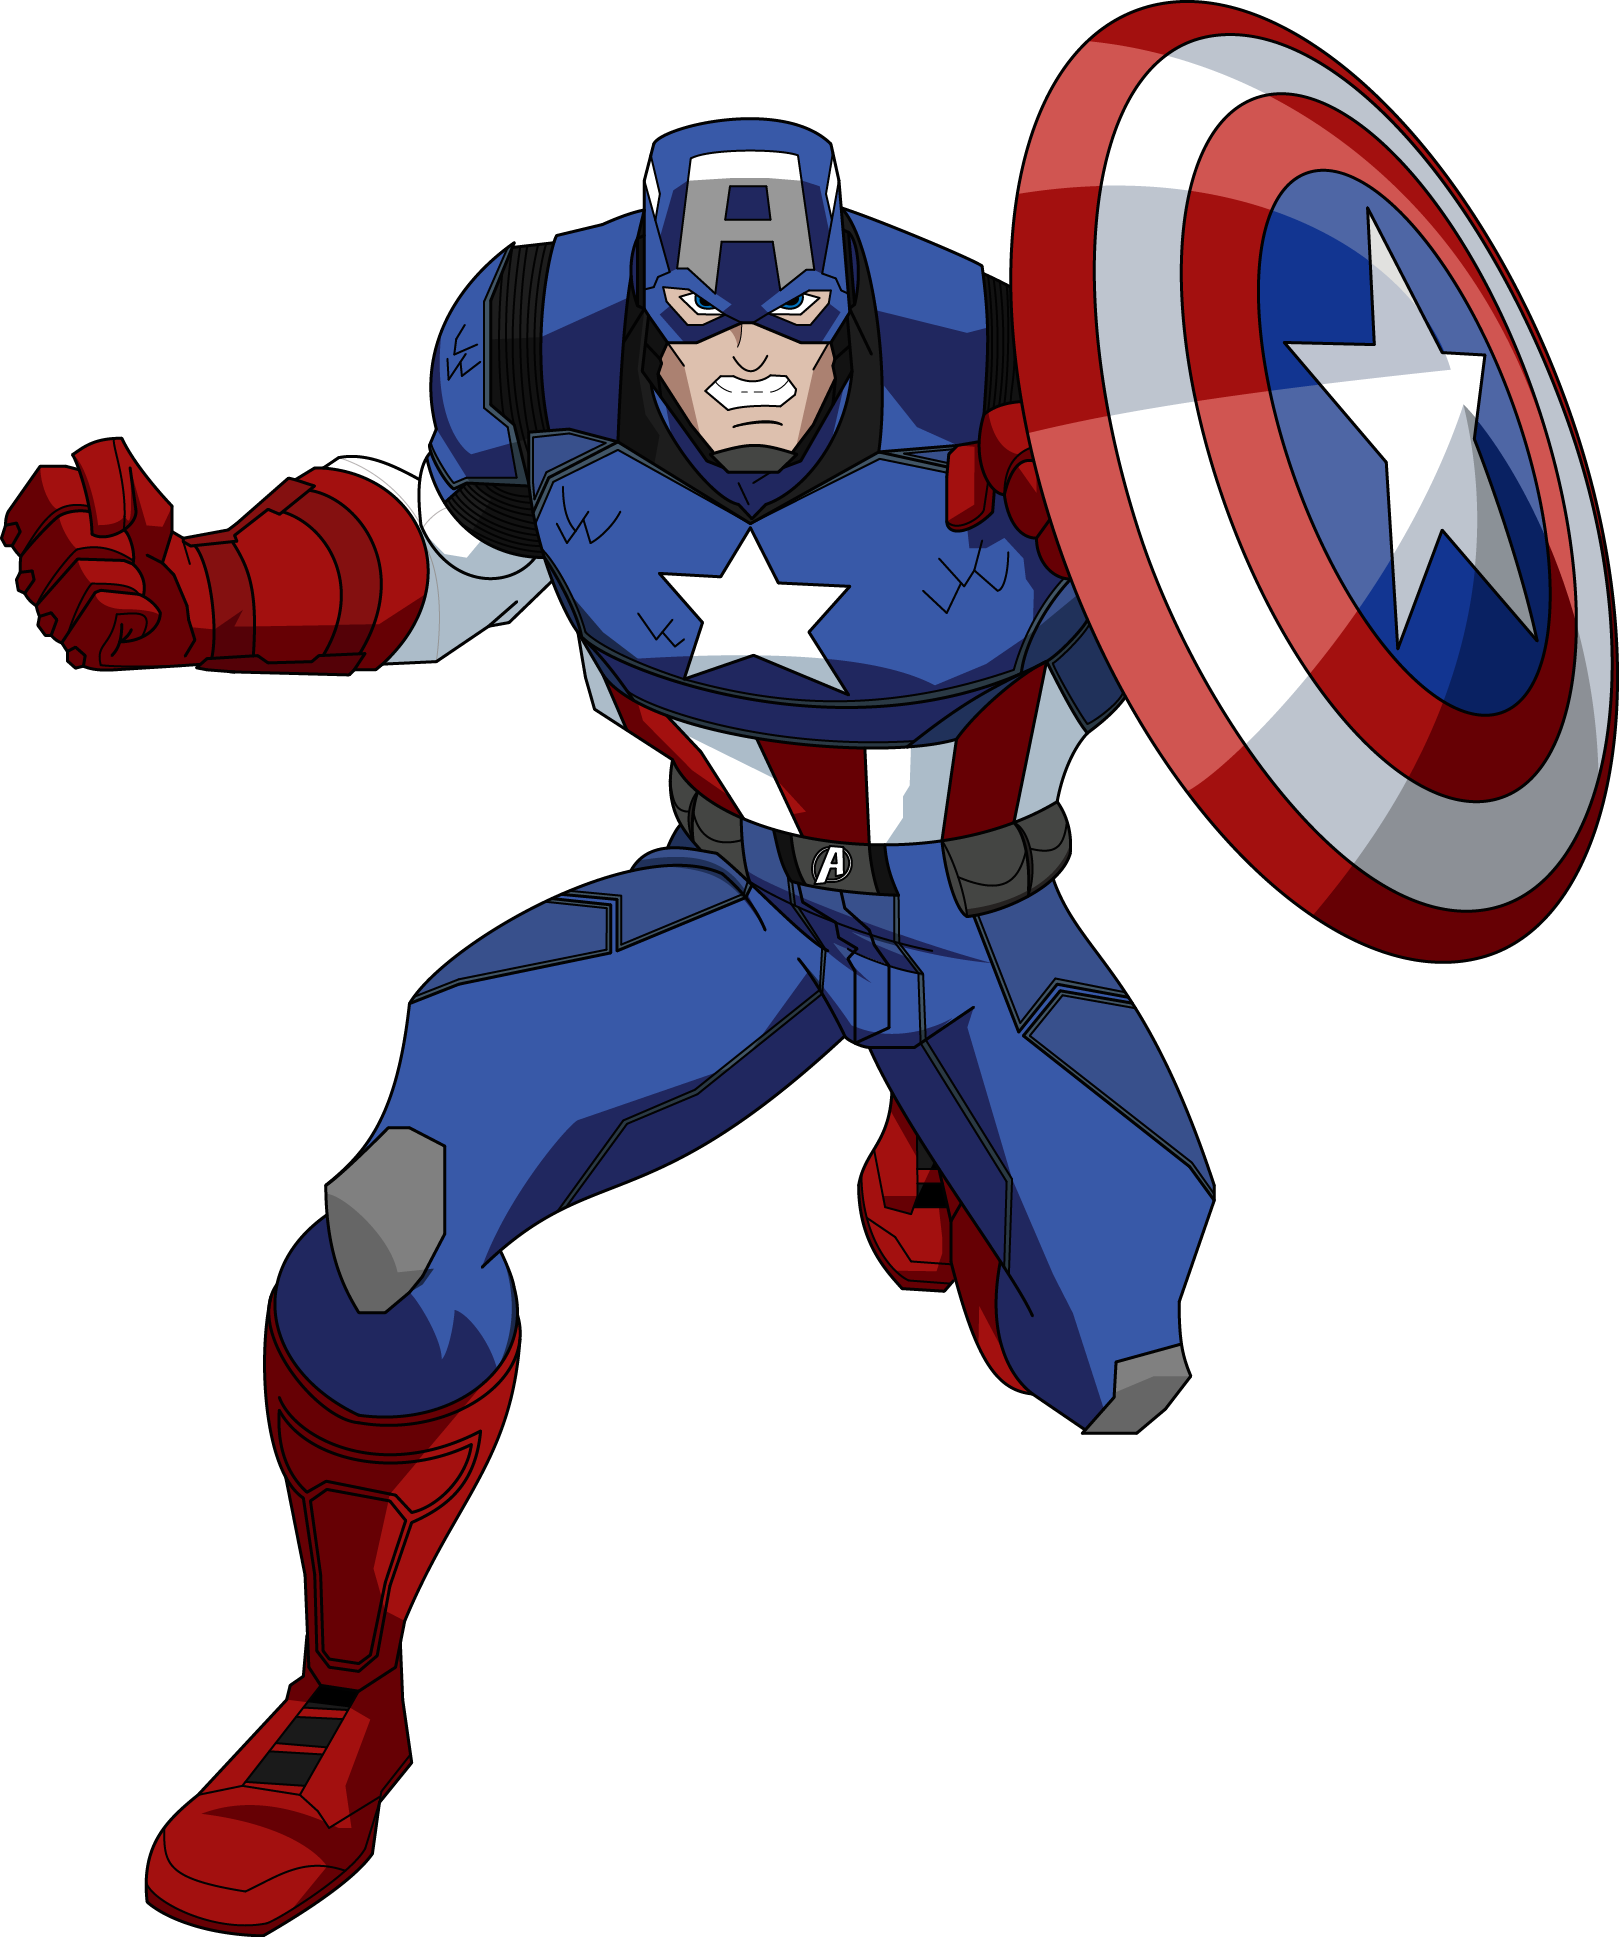 Captain america cartoon png. Image purepng free transparent